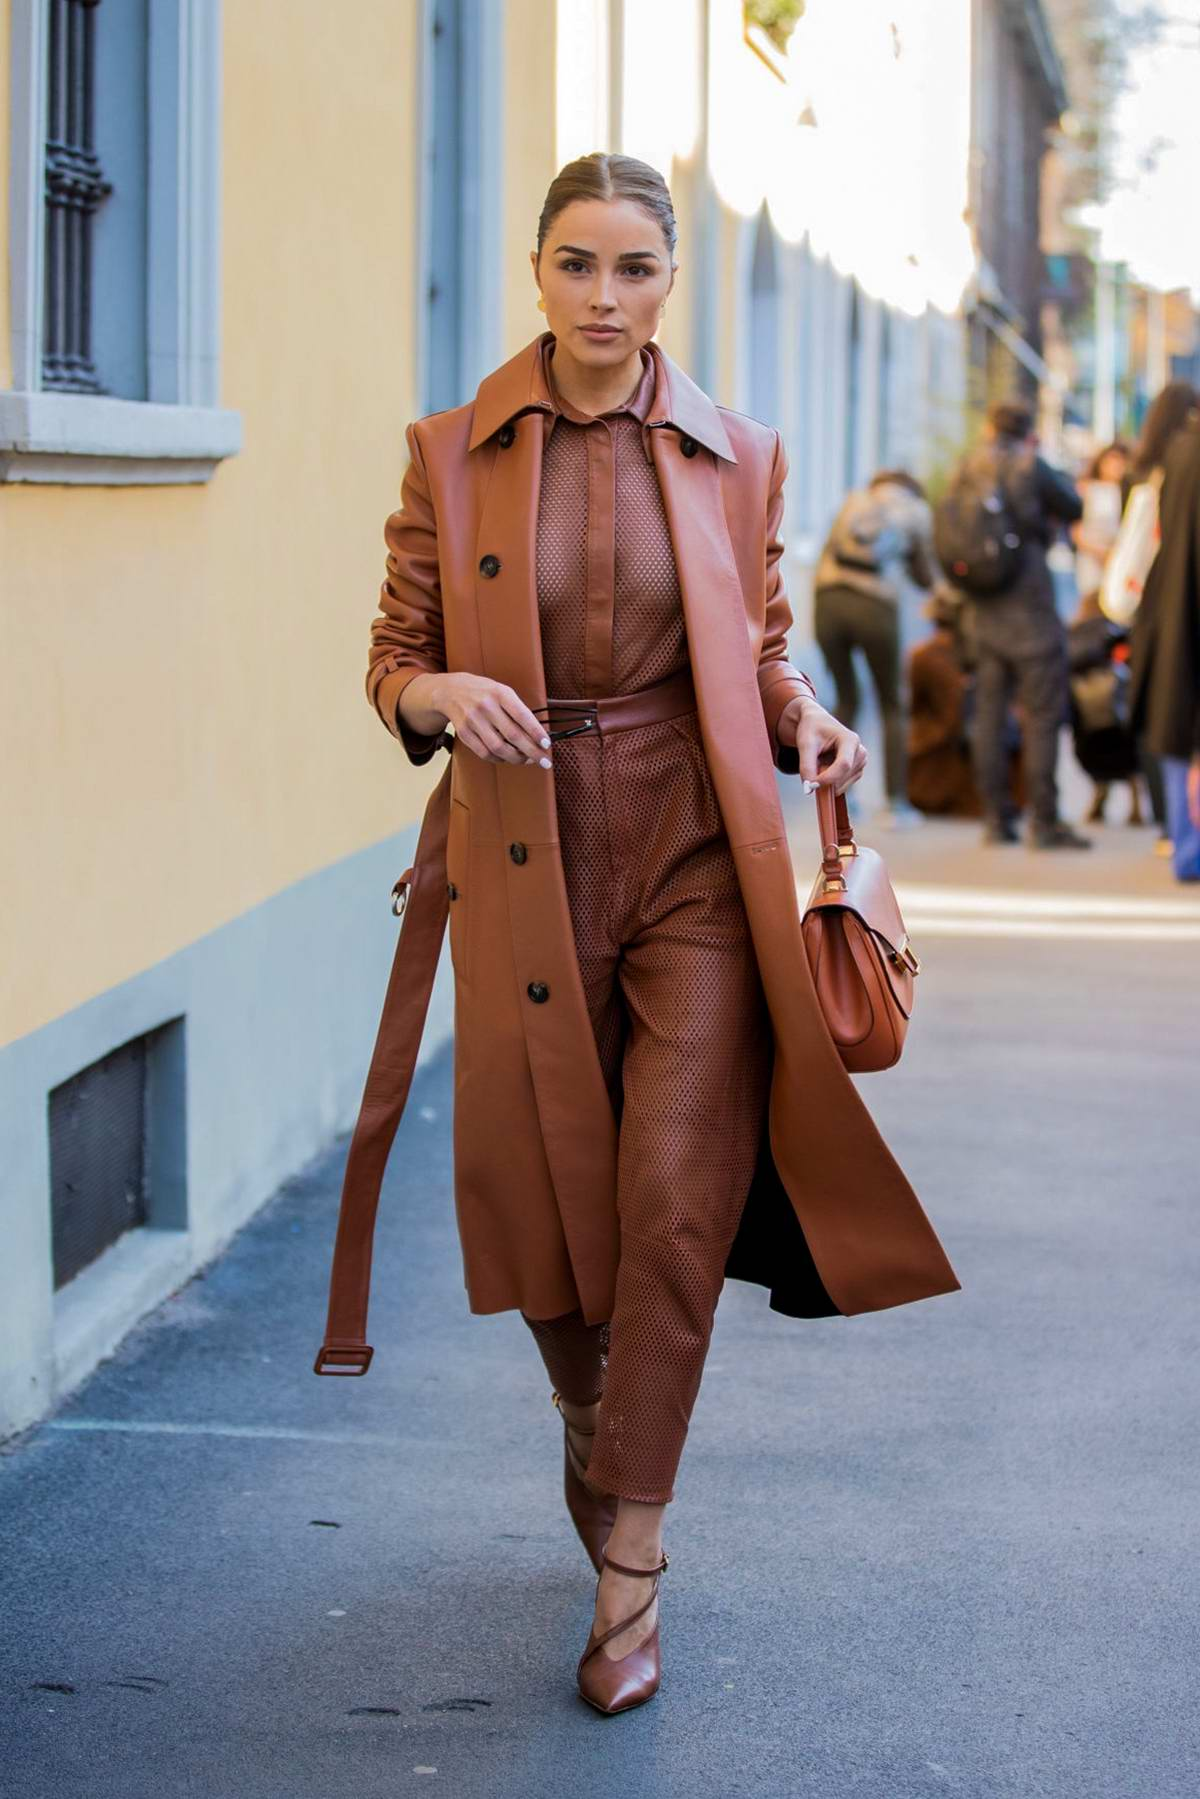 olivia culpo puts on a stylish display in all-brown ensemble while out during milan fashion week 2020 in milan, italy-210220_4